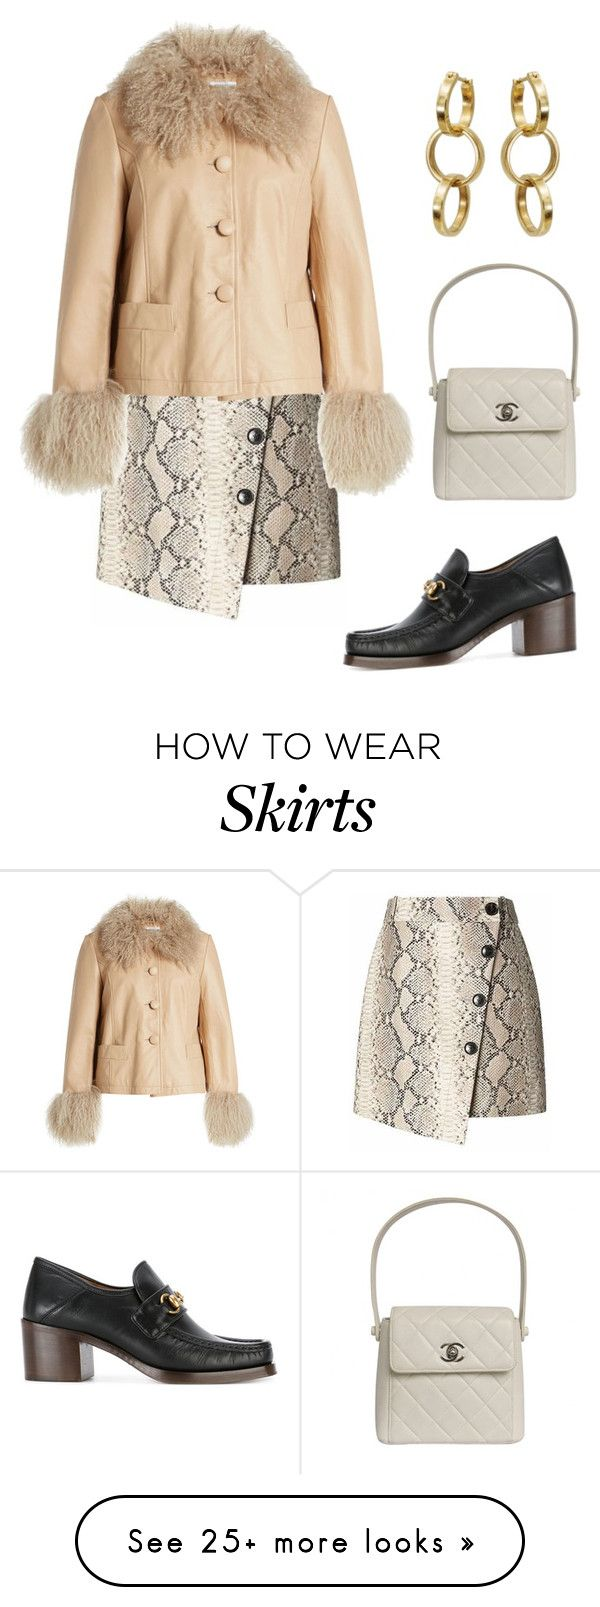 """Untitled #2127"" by lucyshenton on Polyvore featuring Banana Republic, Saks Potts, Chanel and Gucci"